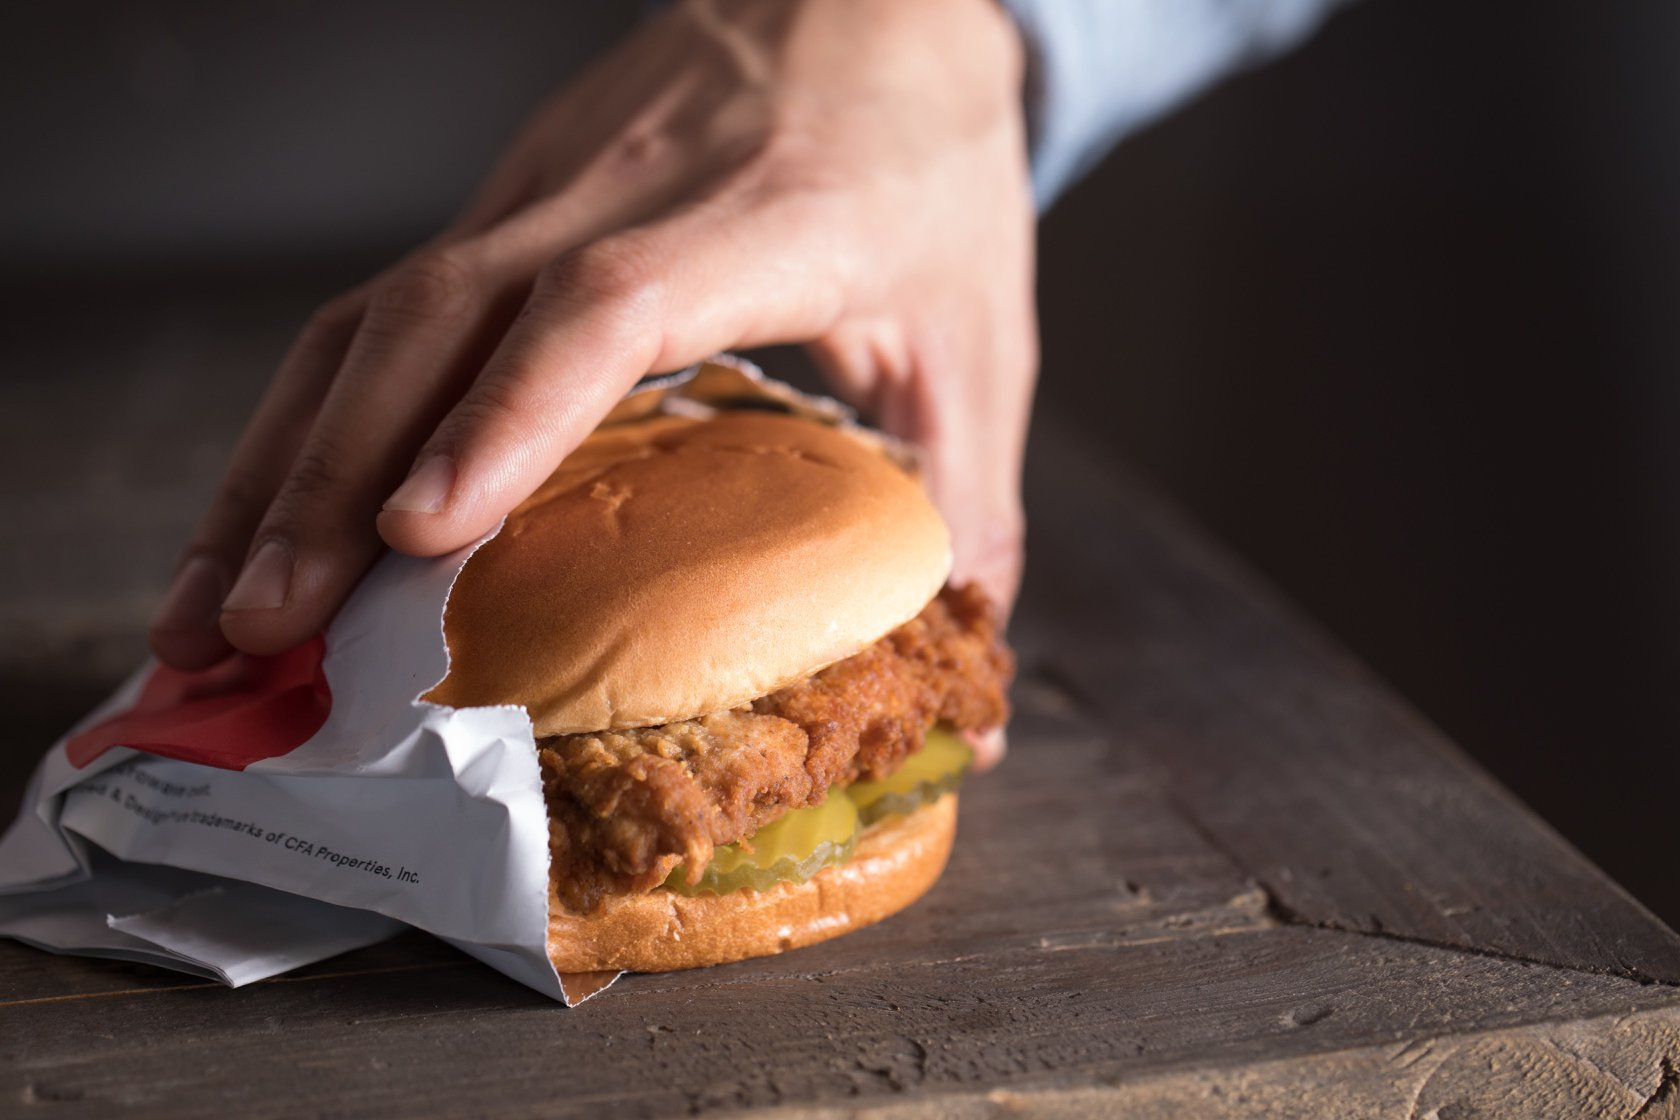 A fried chicken sandwich from Chick-fil-A